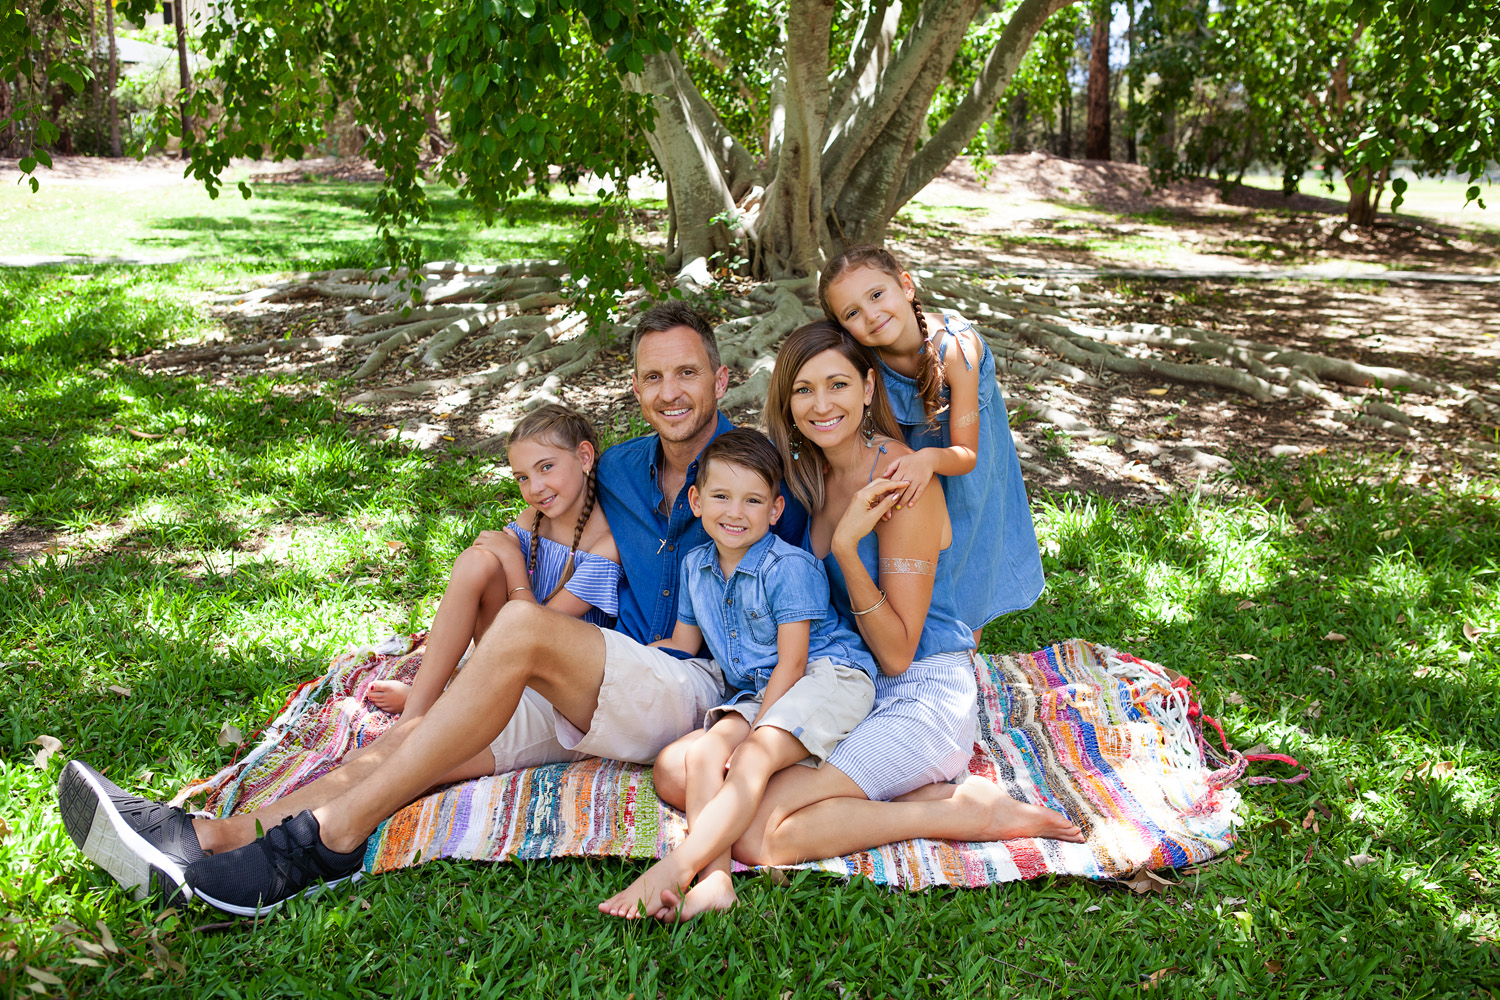 family sitting under tree on picnic blanket, gold coast best family portrait photographer, gold coast best family portrait photography, gold coast best family photographer, gold coast best family photography, gold coast family portraits, gold coast family portrait photographer, lana noir, @lananoir, gold coast natural light photography, gold coast outdoor photography, robina photographer, broadbeach photographer, gold coast professional photographer, gold coast families